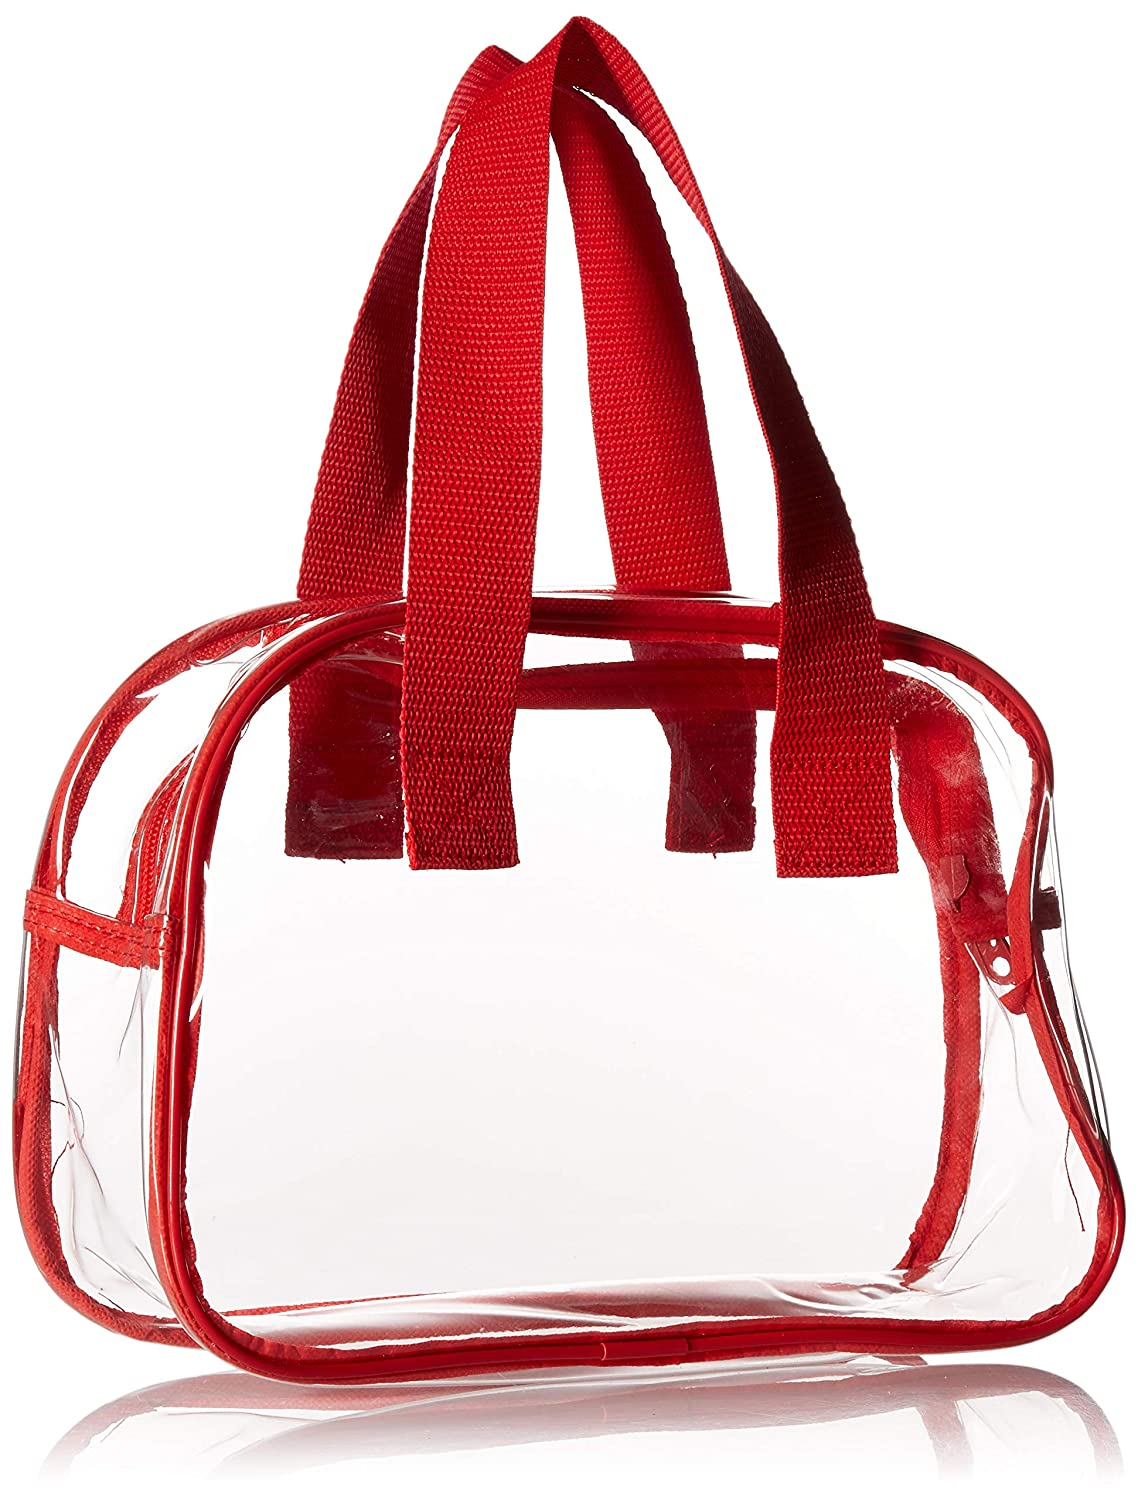 9d71ed18546 ... Nova Sport Wear Clear Purse That is Event Stadium Approved. Clear  Handbags for Cosmetics, ...